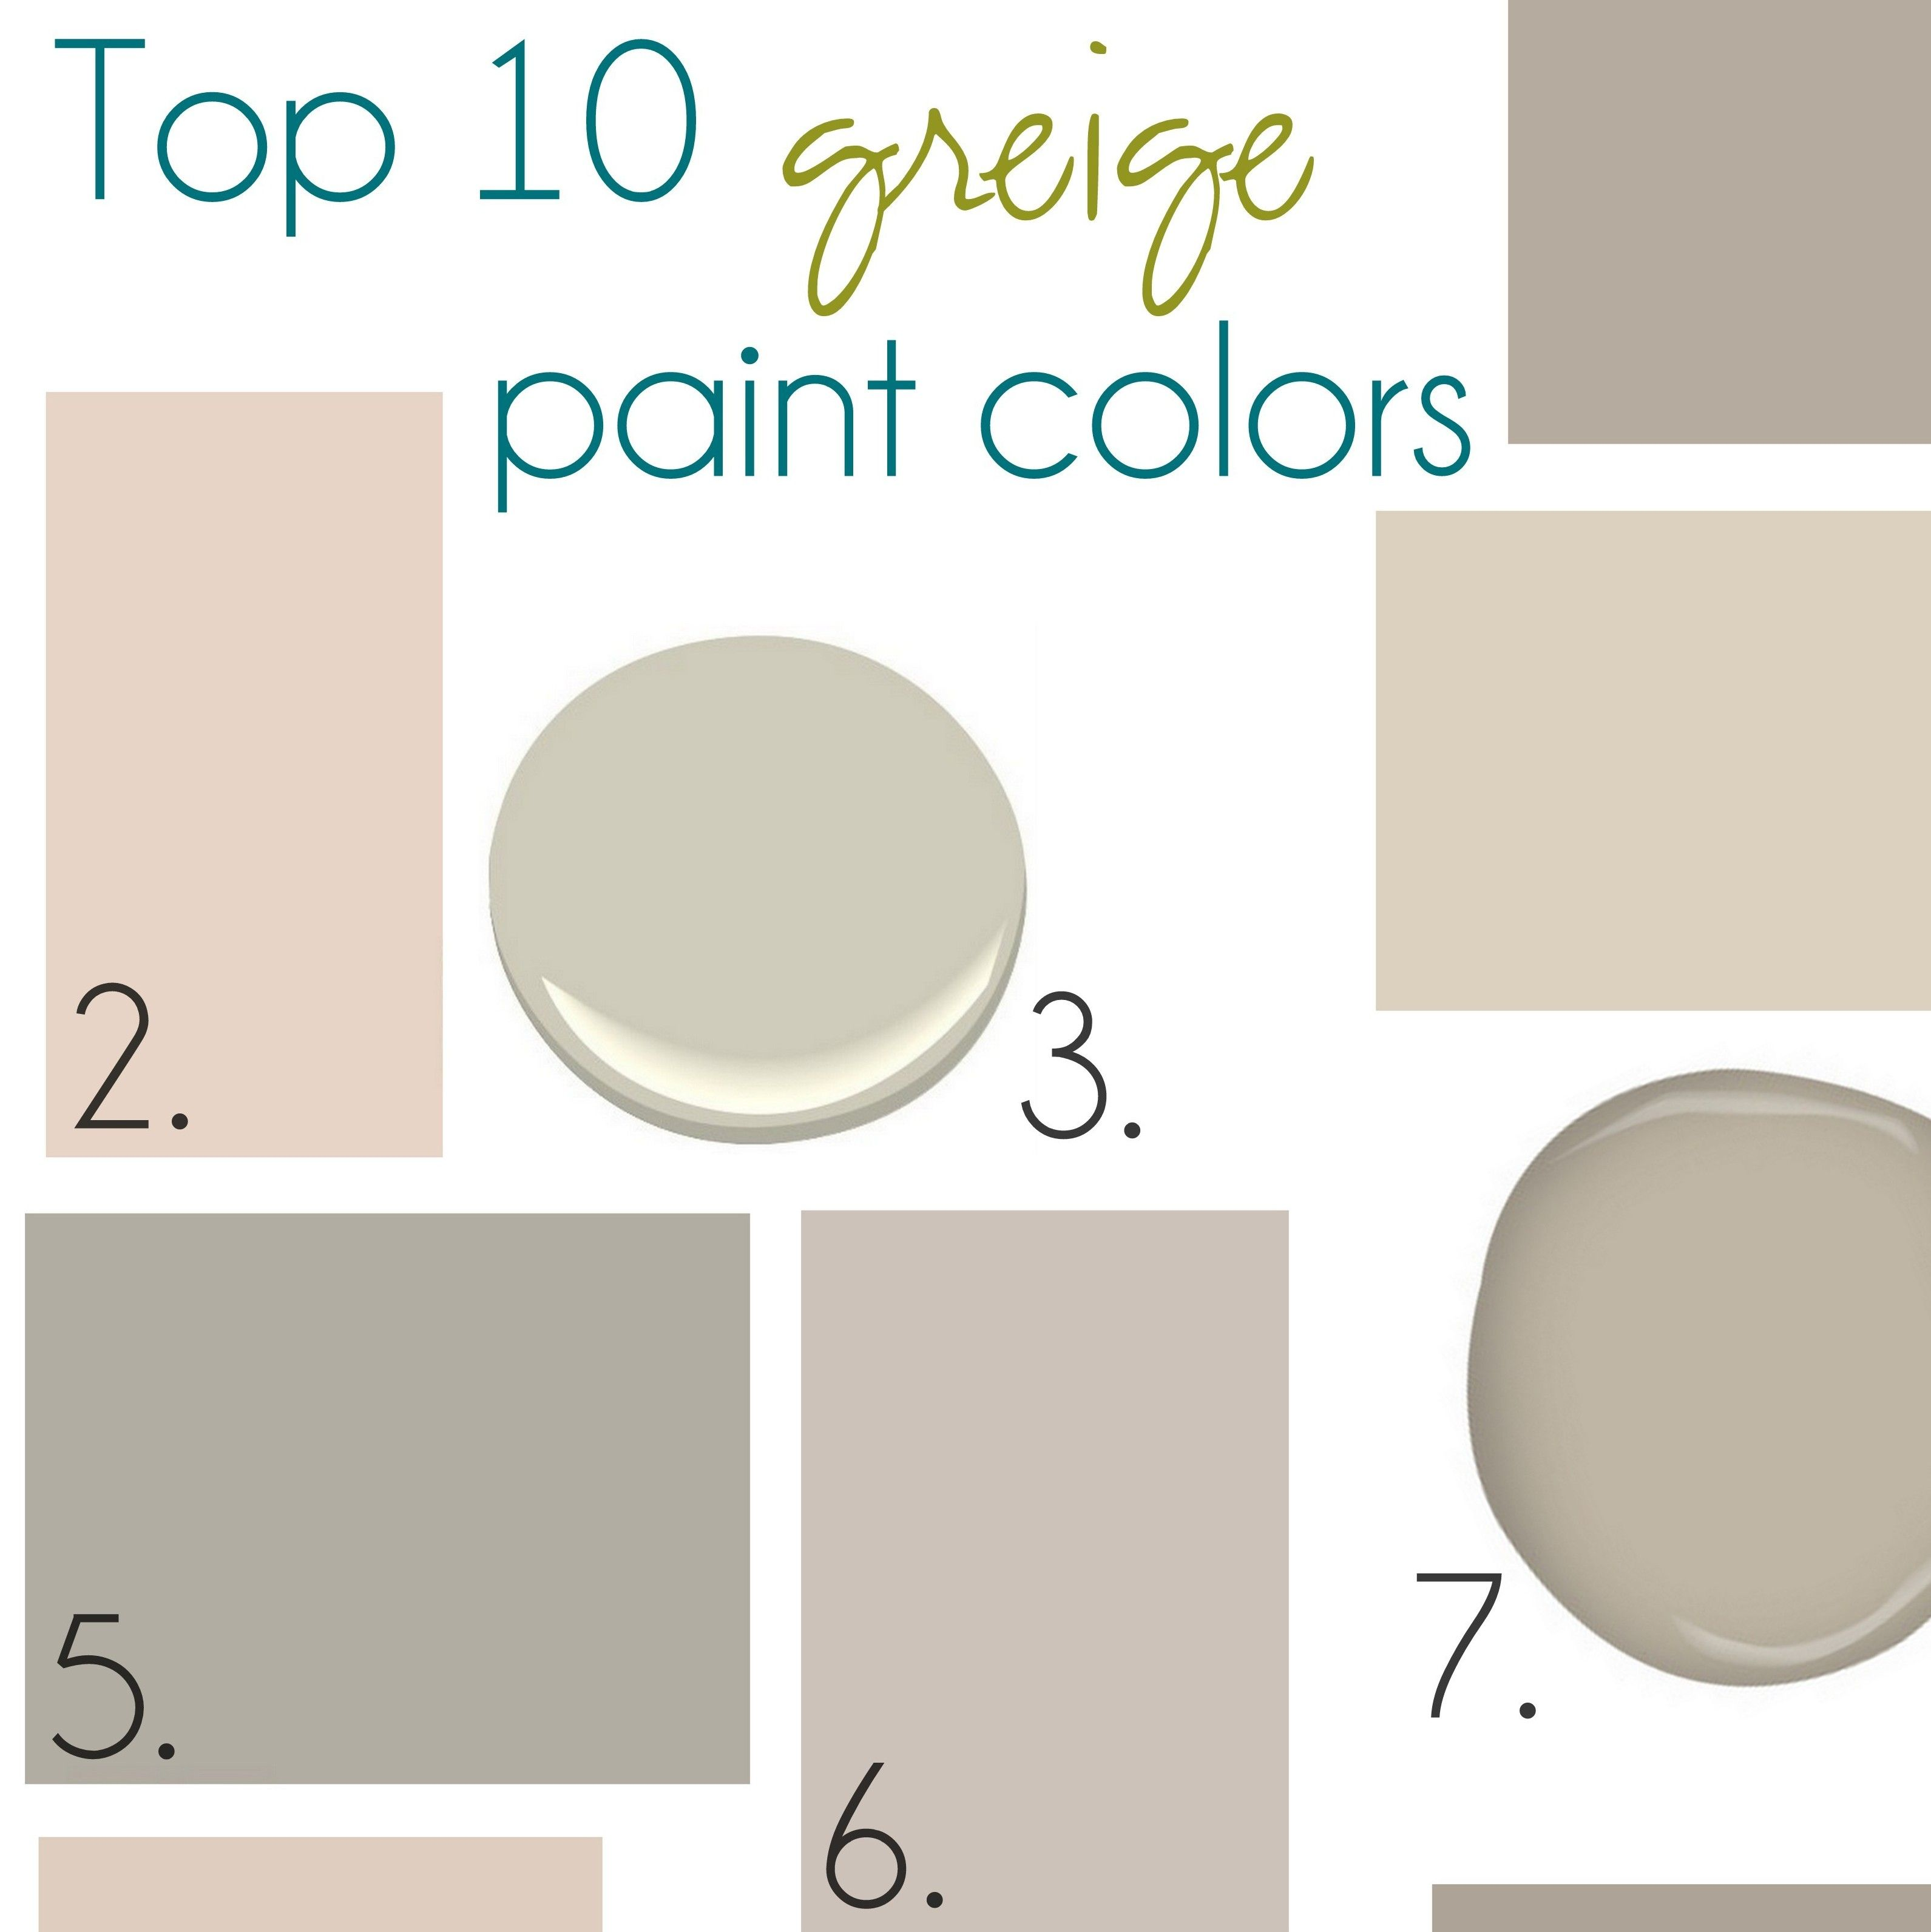 Perfect Greige By Sherwin Williams Neutral Light Tan With: Colors Include: 1. Sherwin Williams Mega Greige 2. Valspar